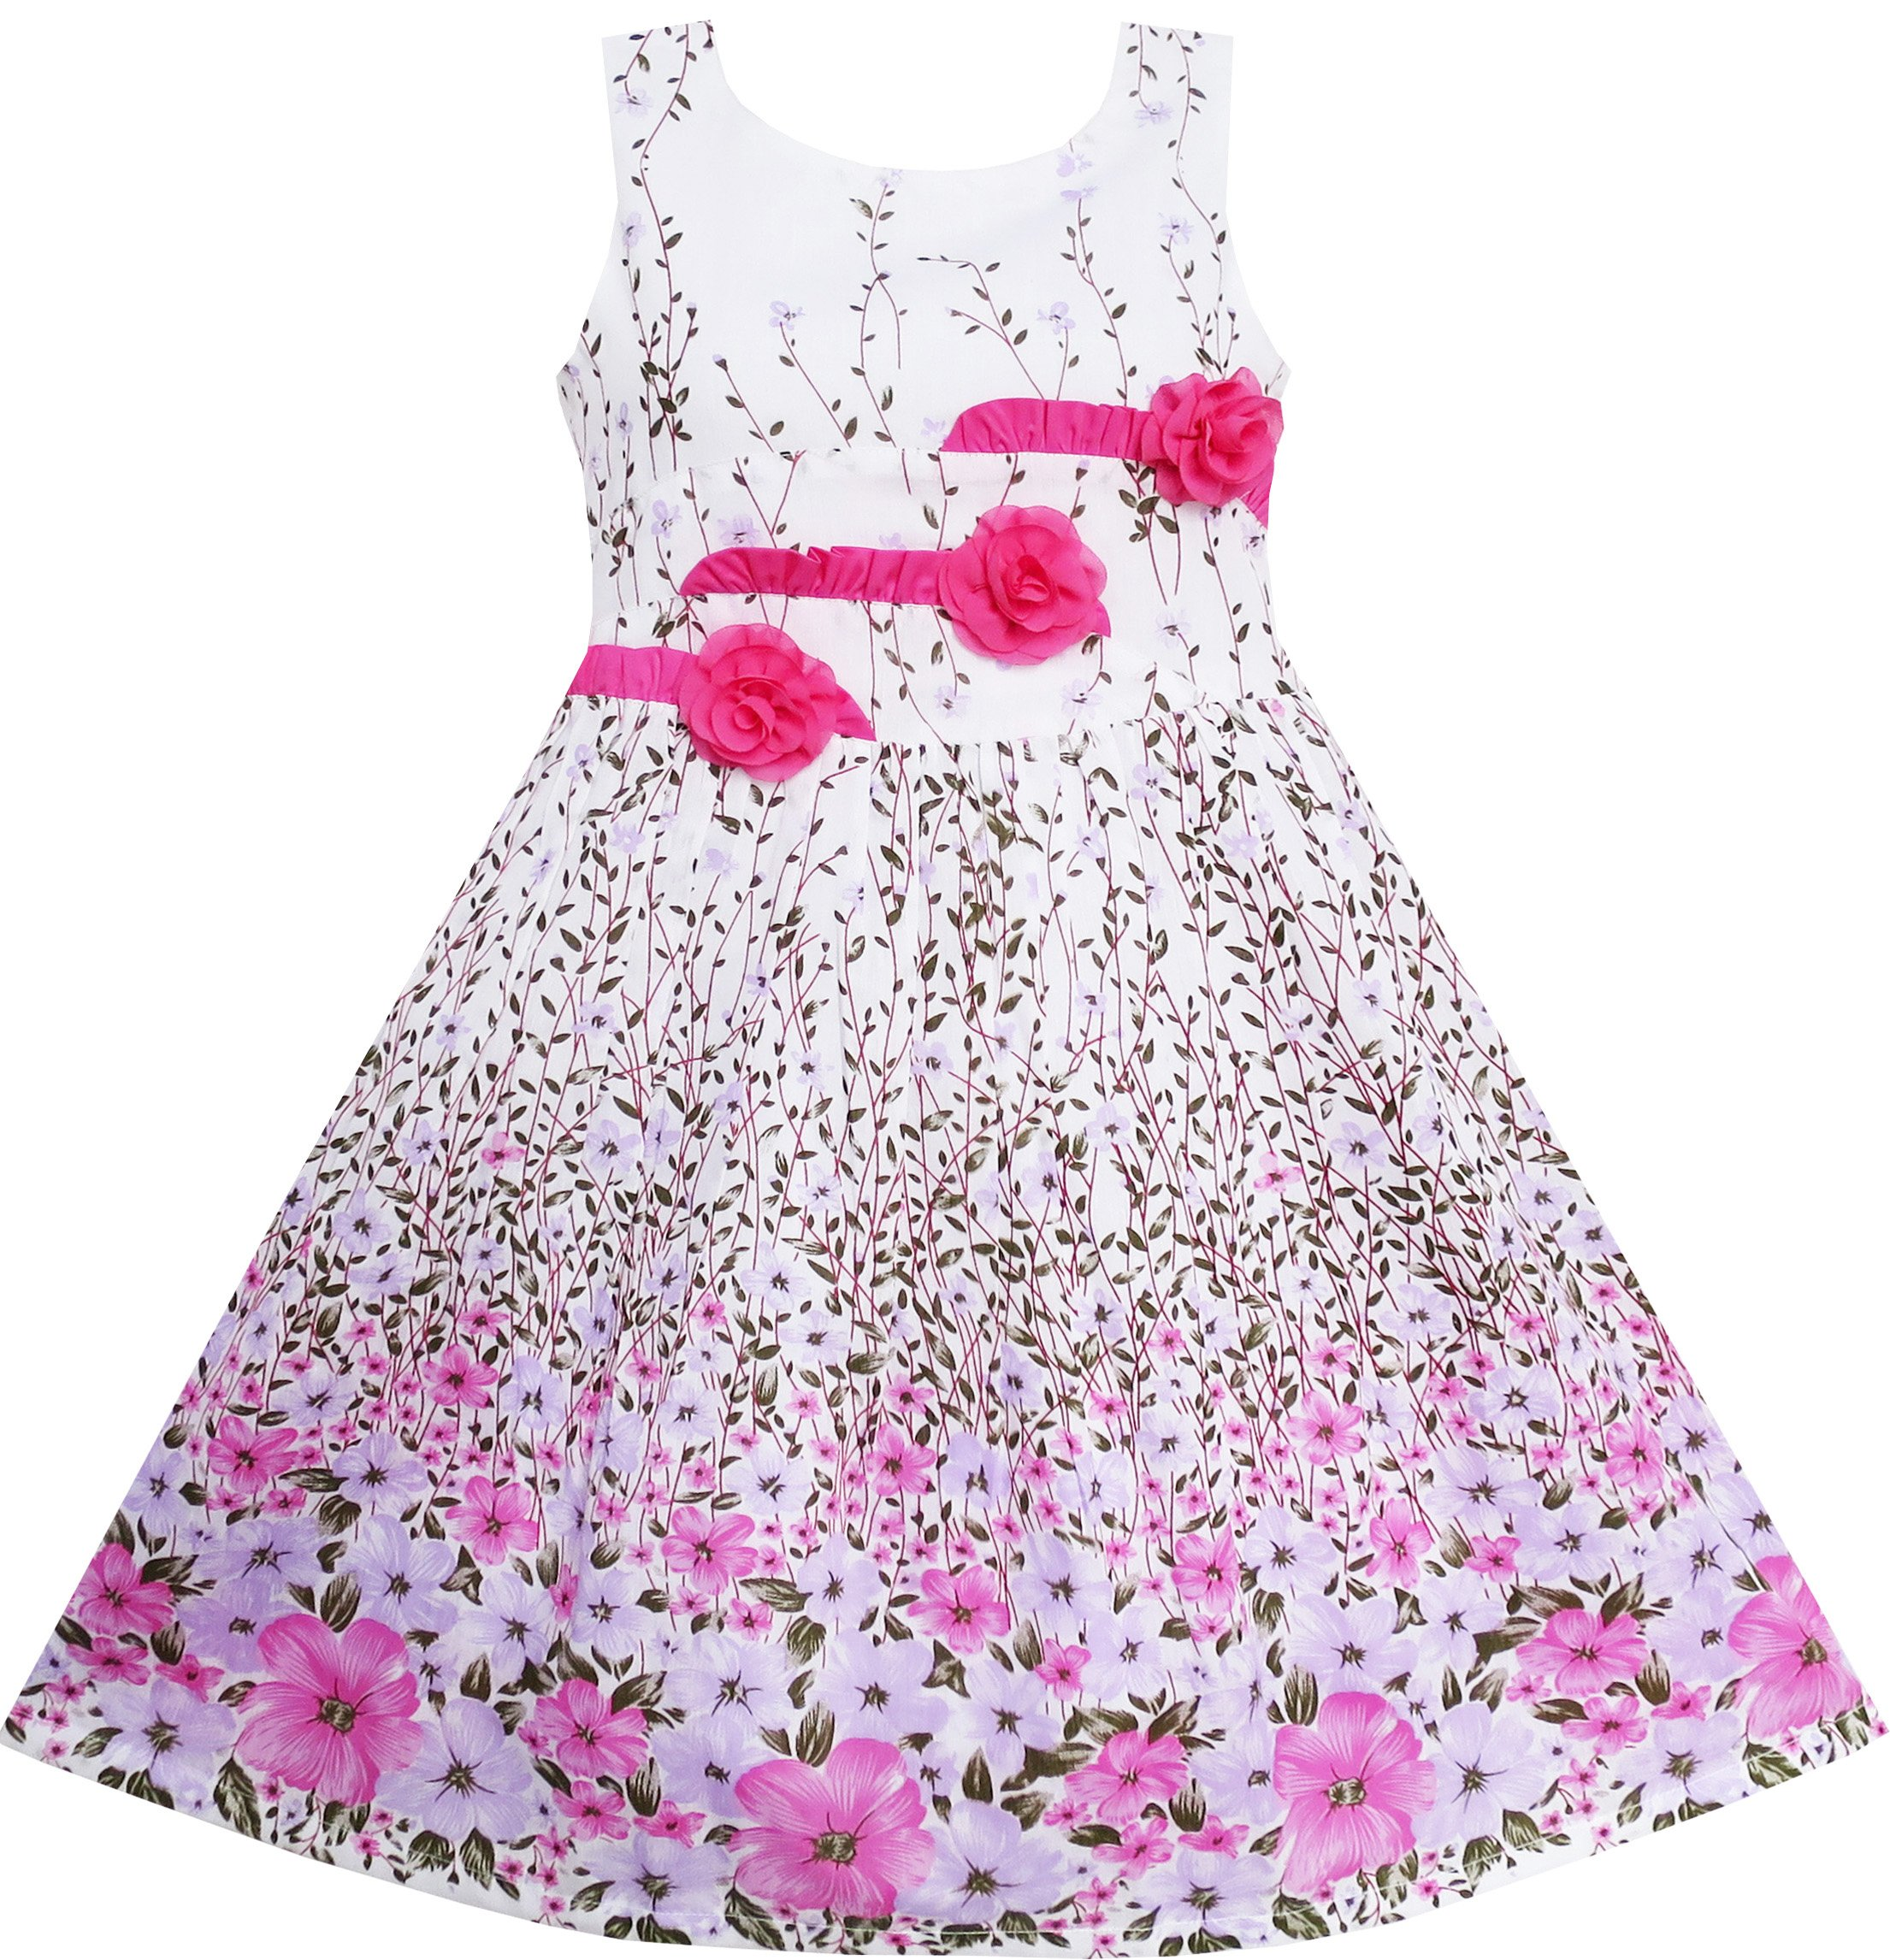 Sunny Fashion EP31 Girls Dress 3 Pink Flower Leaves School Party Size 6